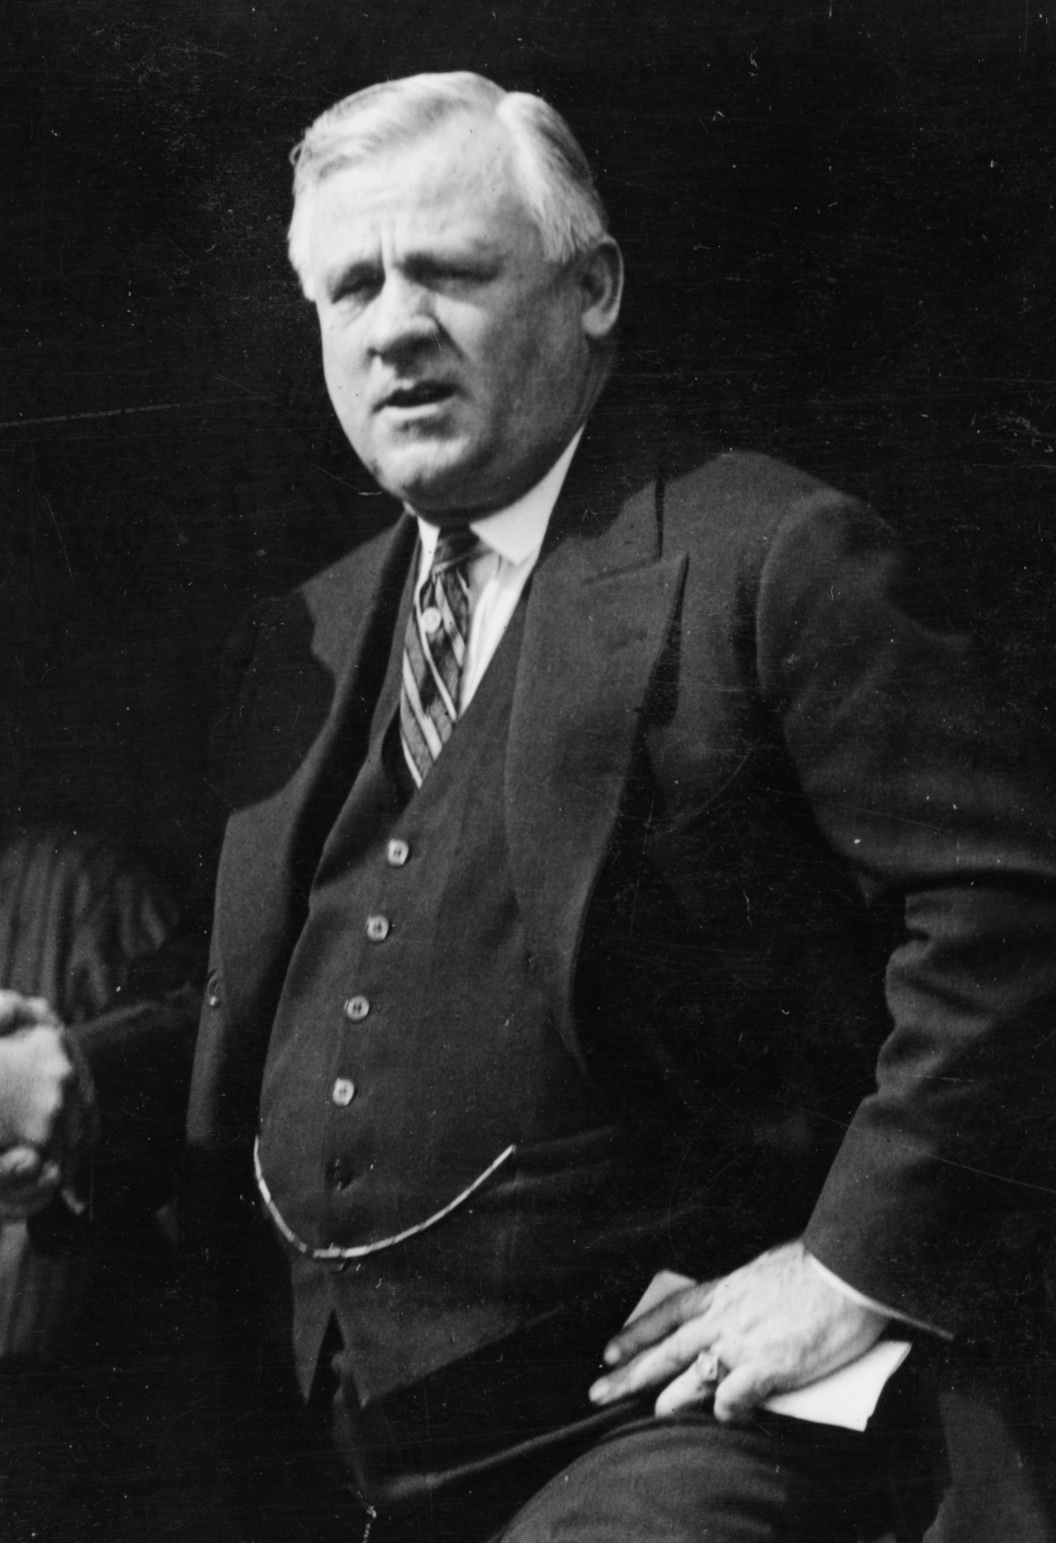 e4a3ea95eea1 John McGraw - Wikipedia